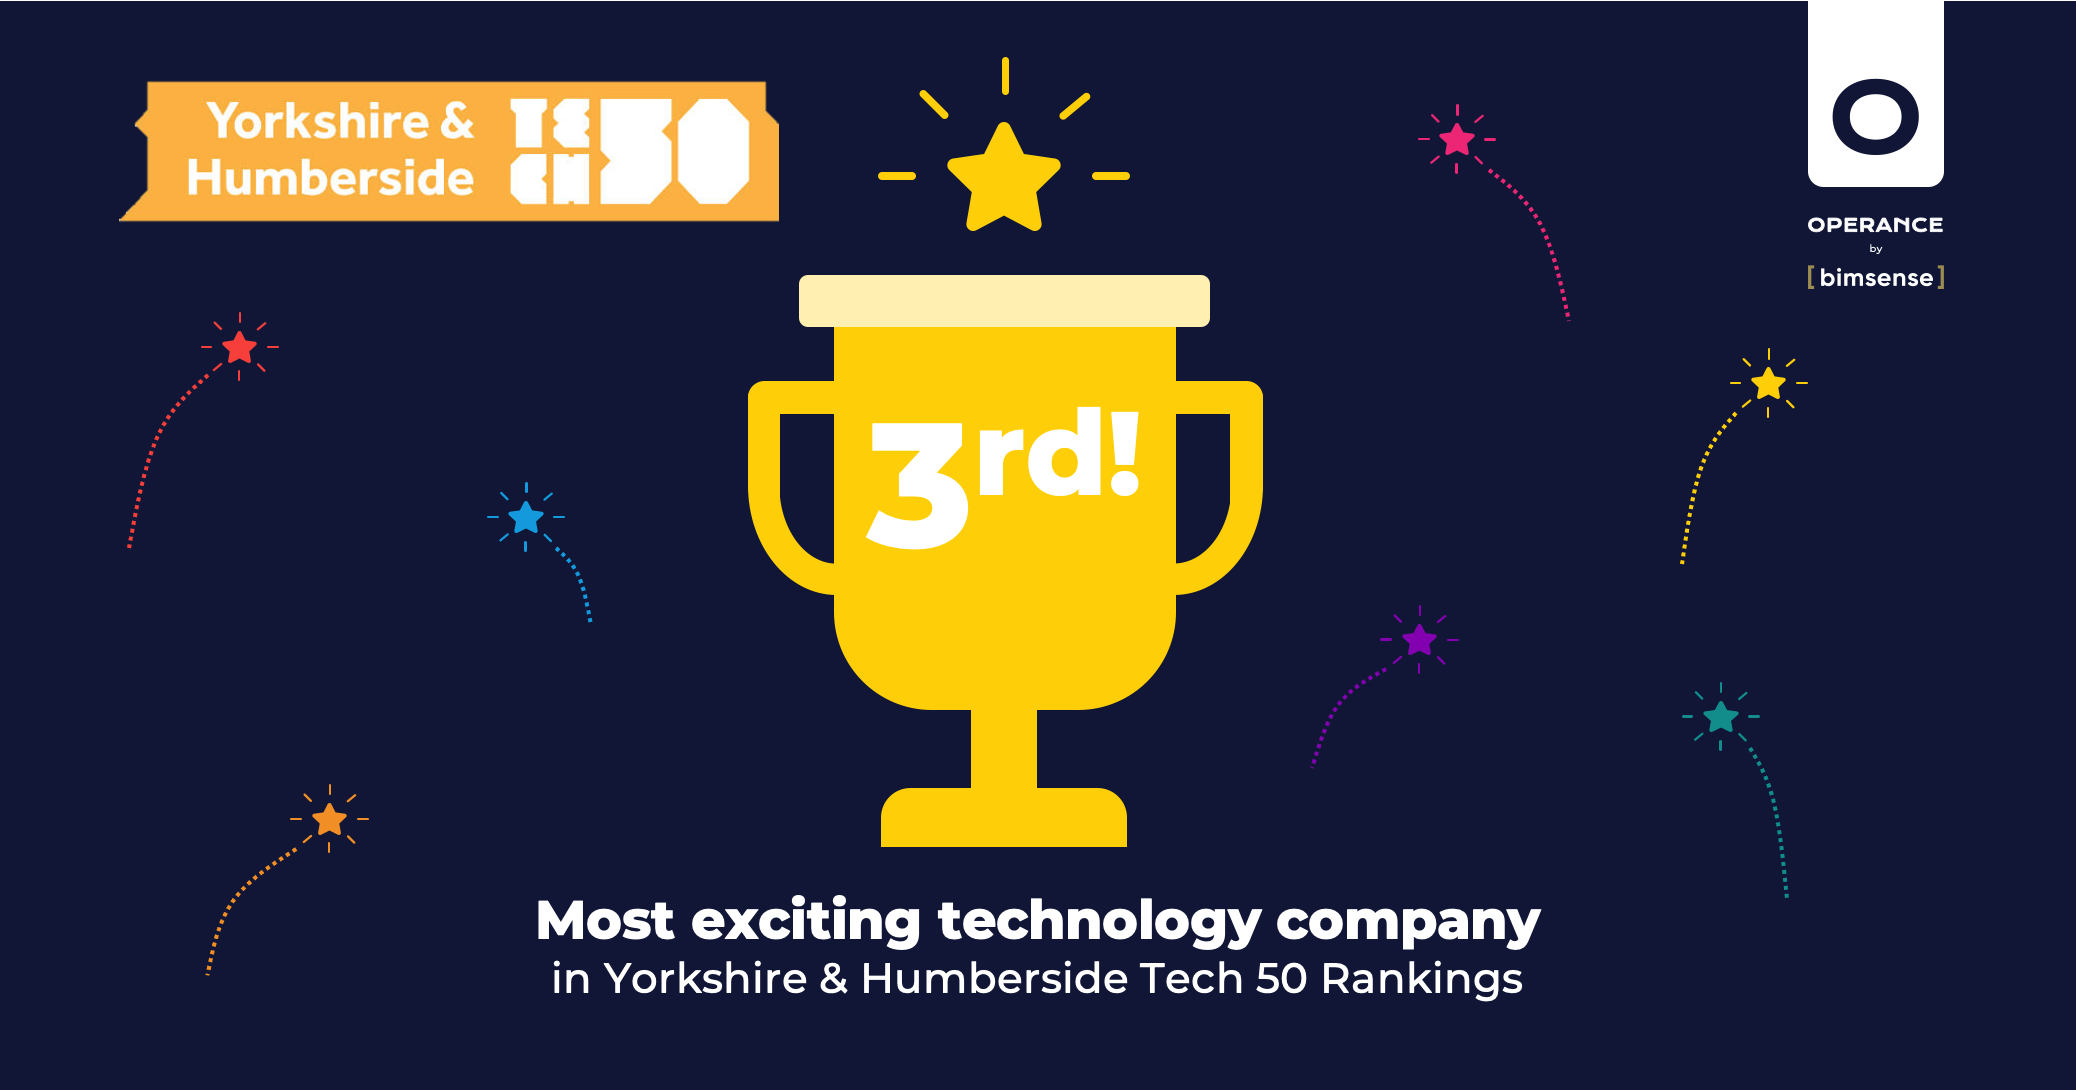 Operance Ranked 3rd Most Exciting Tech Company